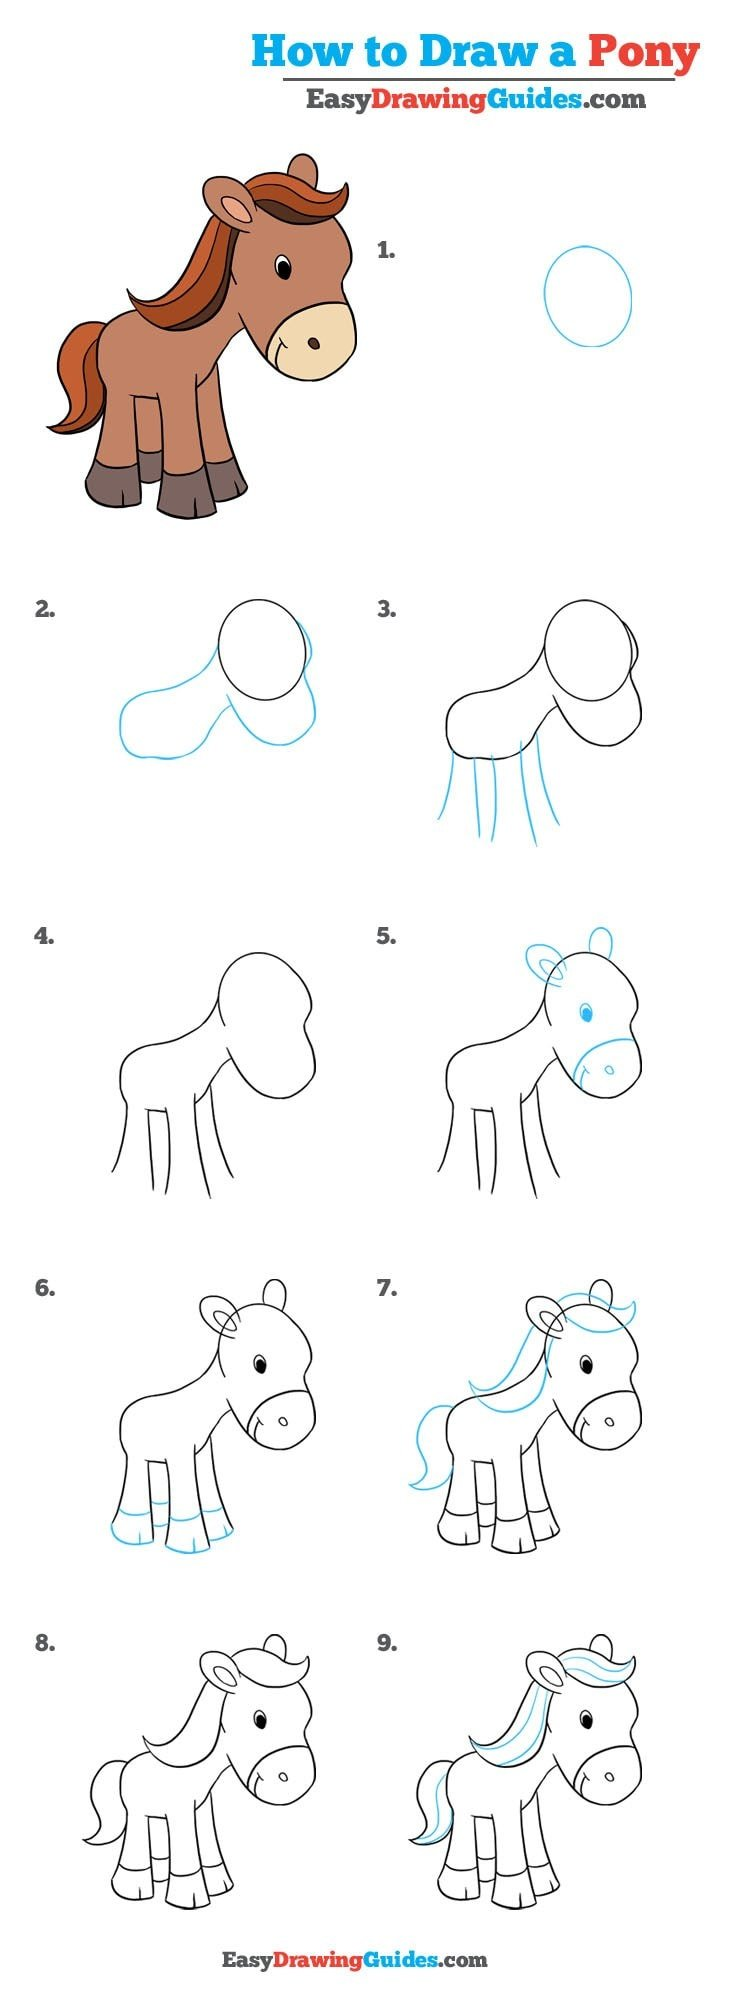 How to Draw Pony